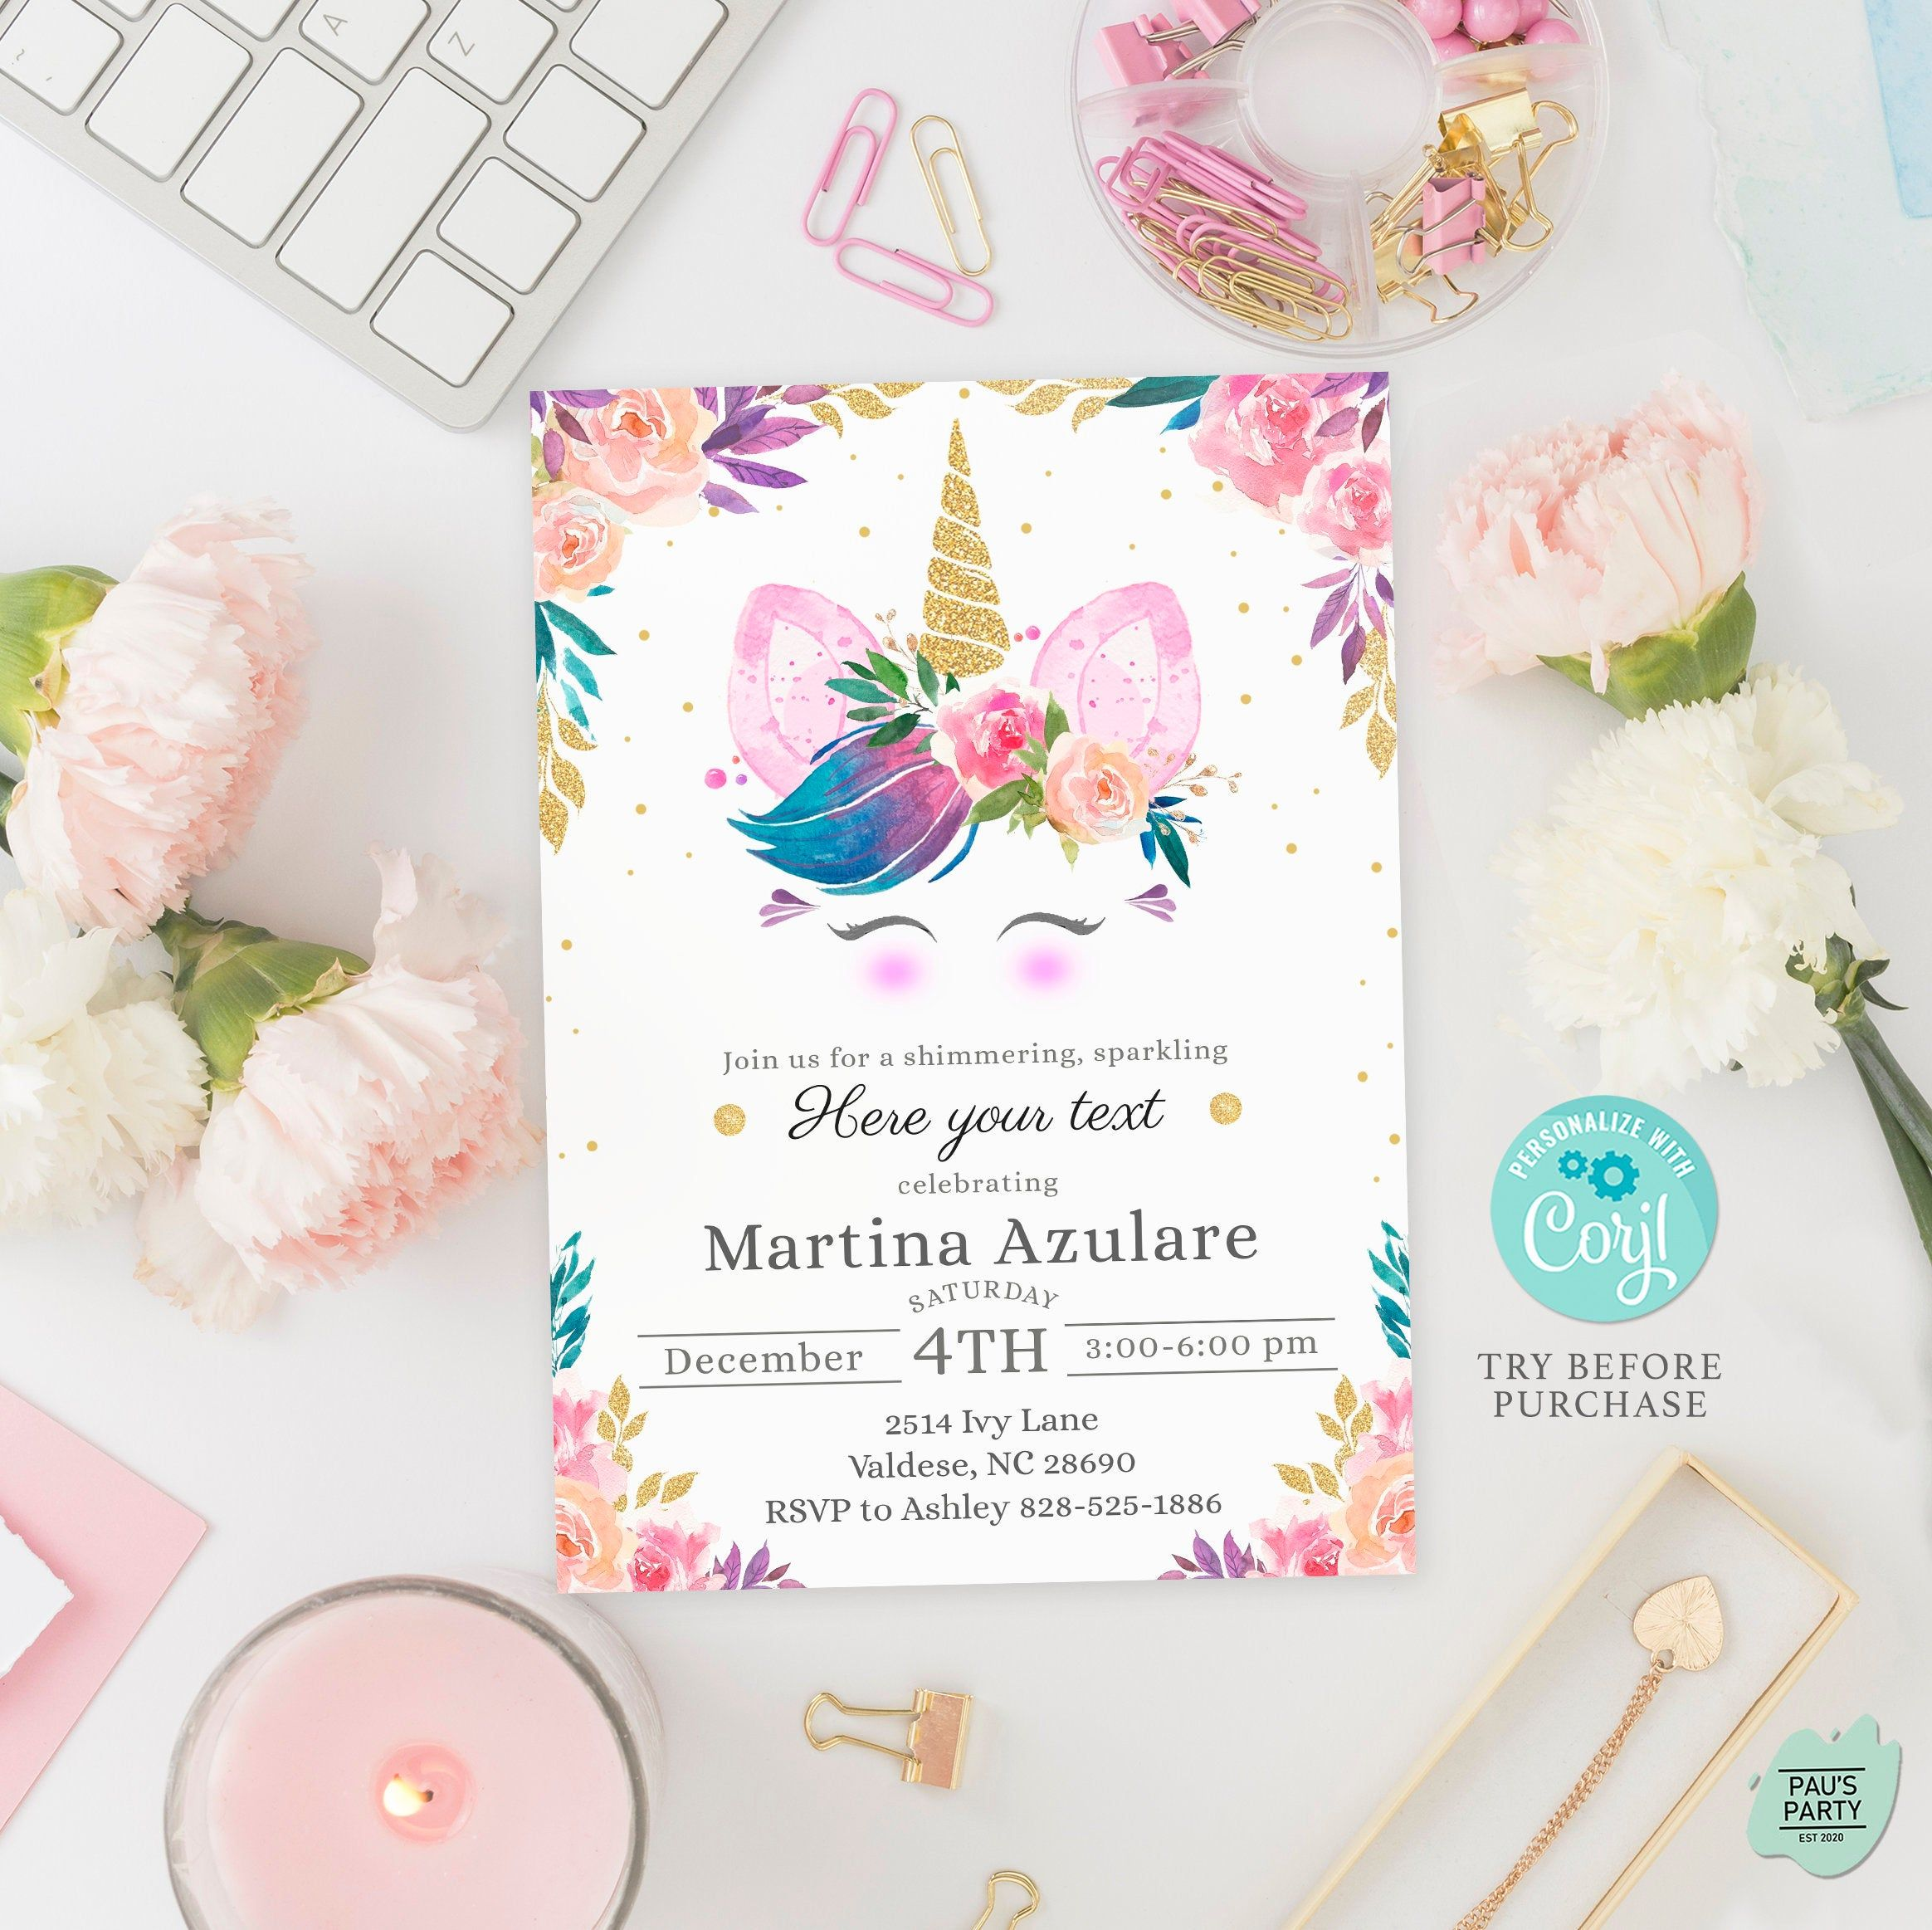 Editable Unicorn Invitation Template With Fully Editable Text For Magical Unicorn Party Try B Unicorn Birthday Invitations Unicorn Invitations Unicorn Party